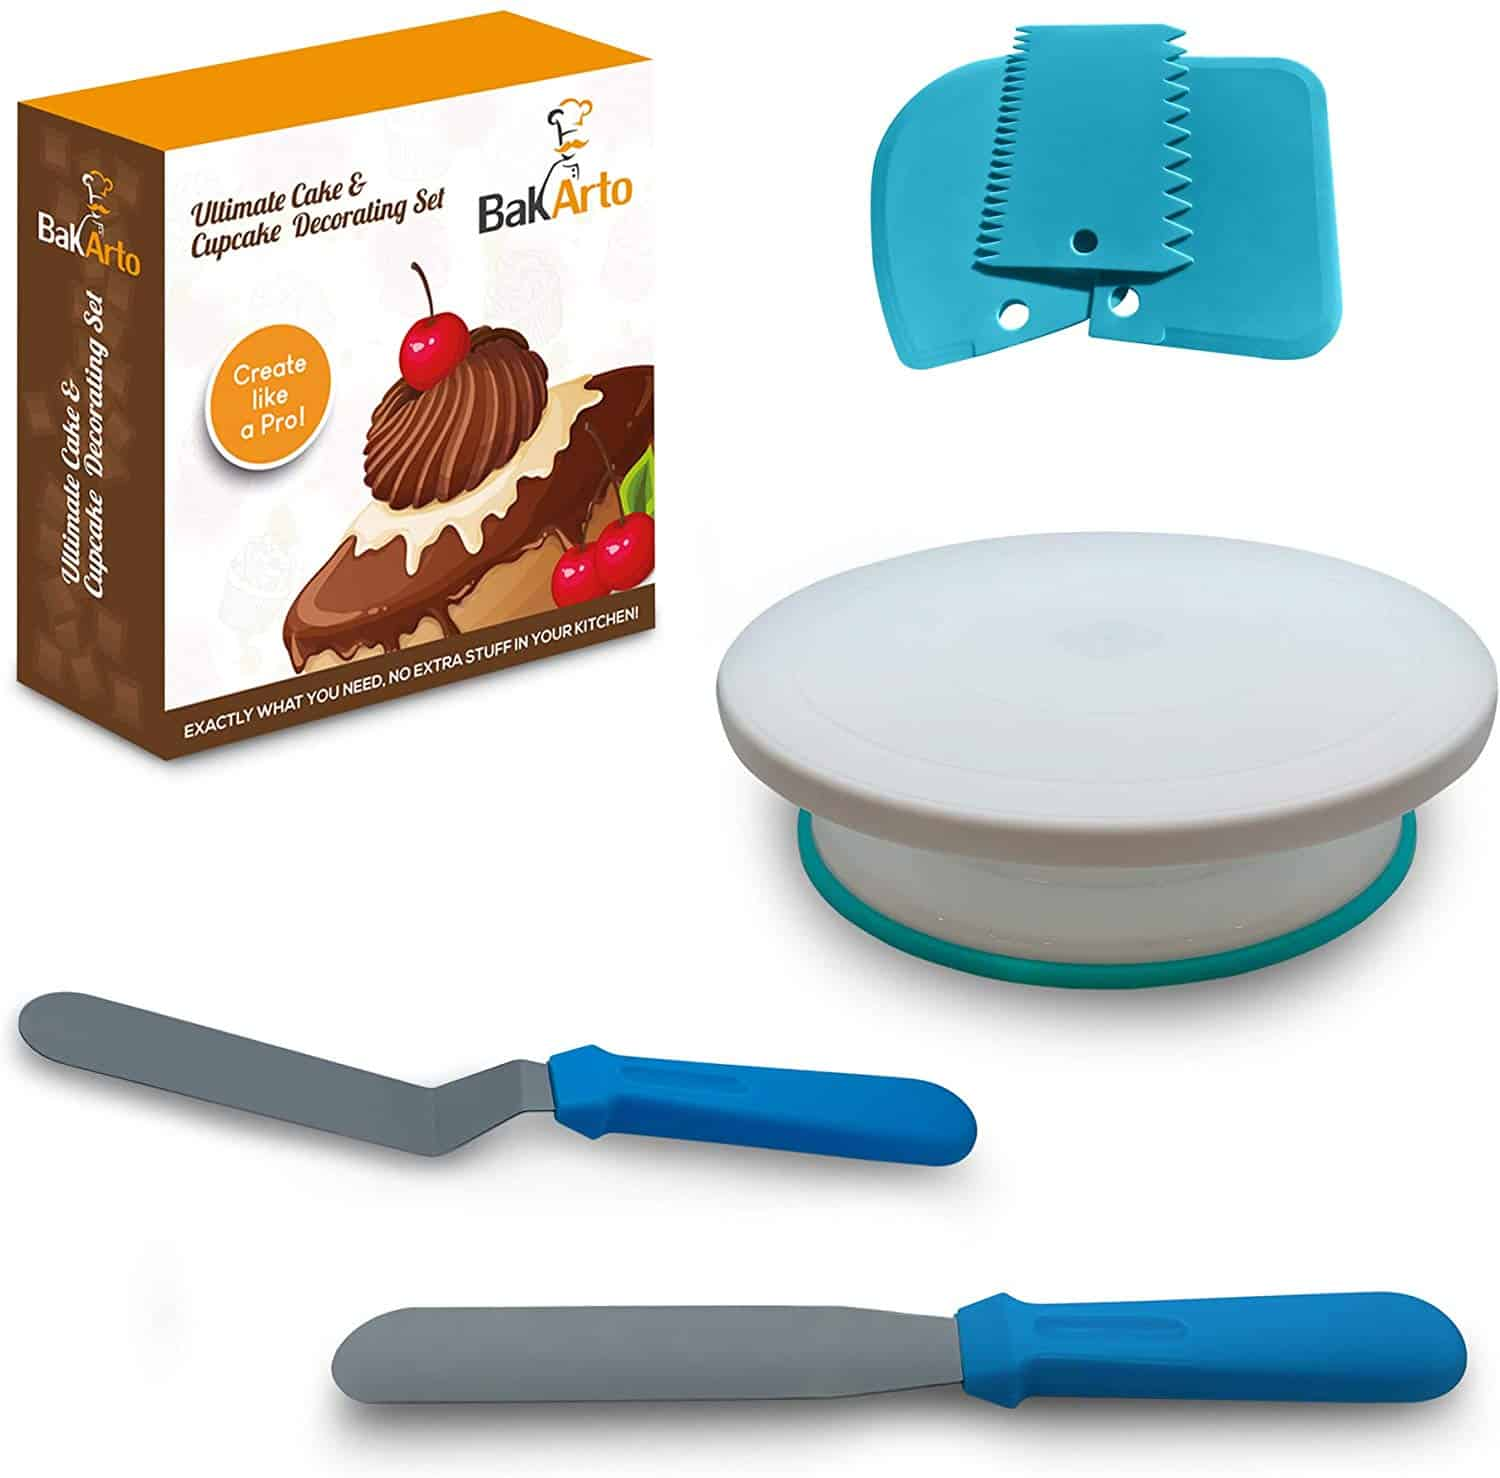 All in one cake decorating kit